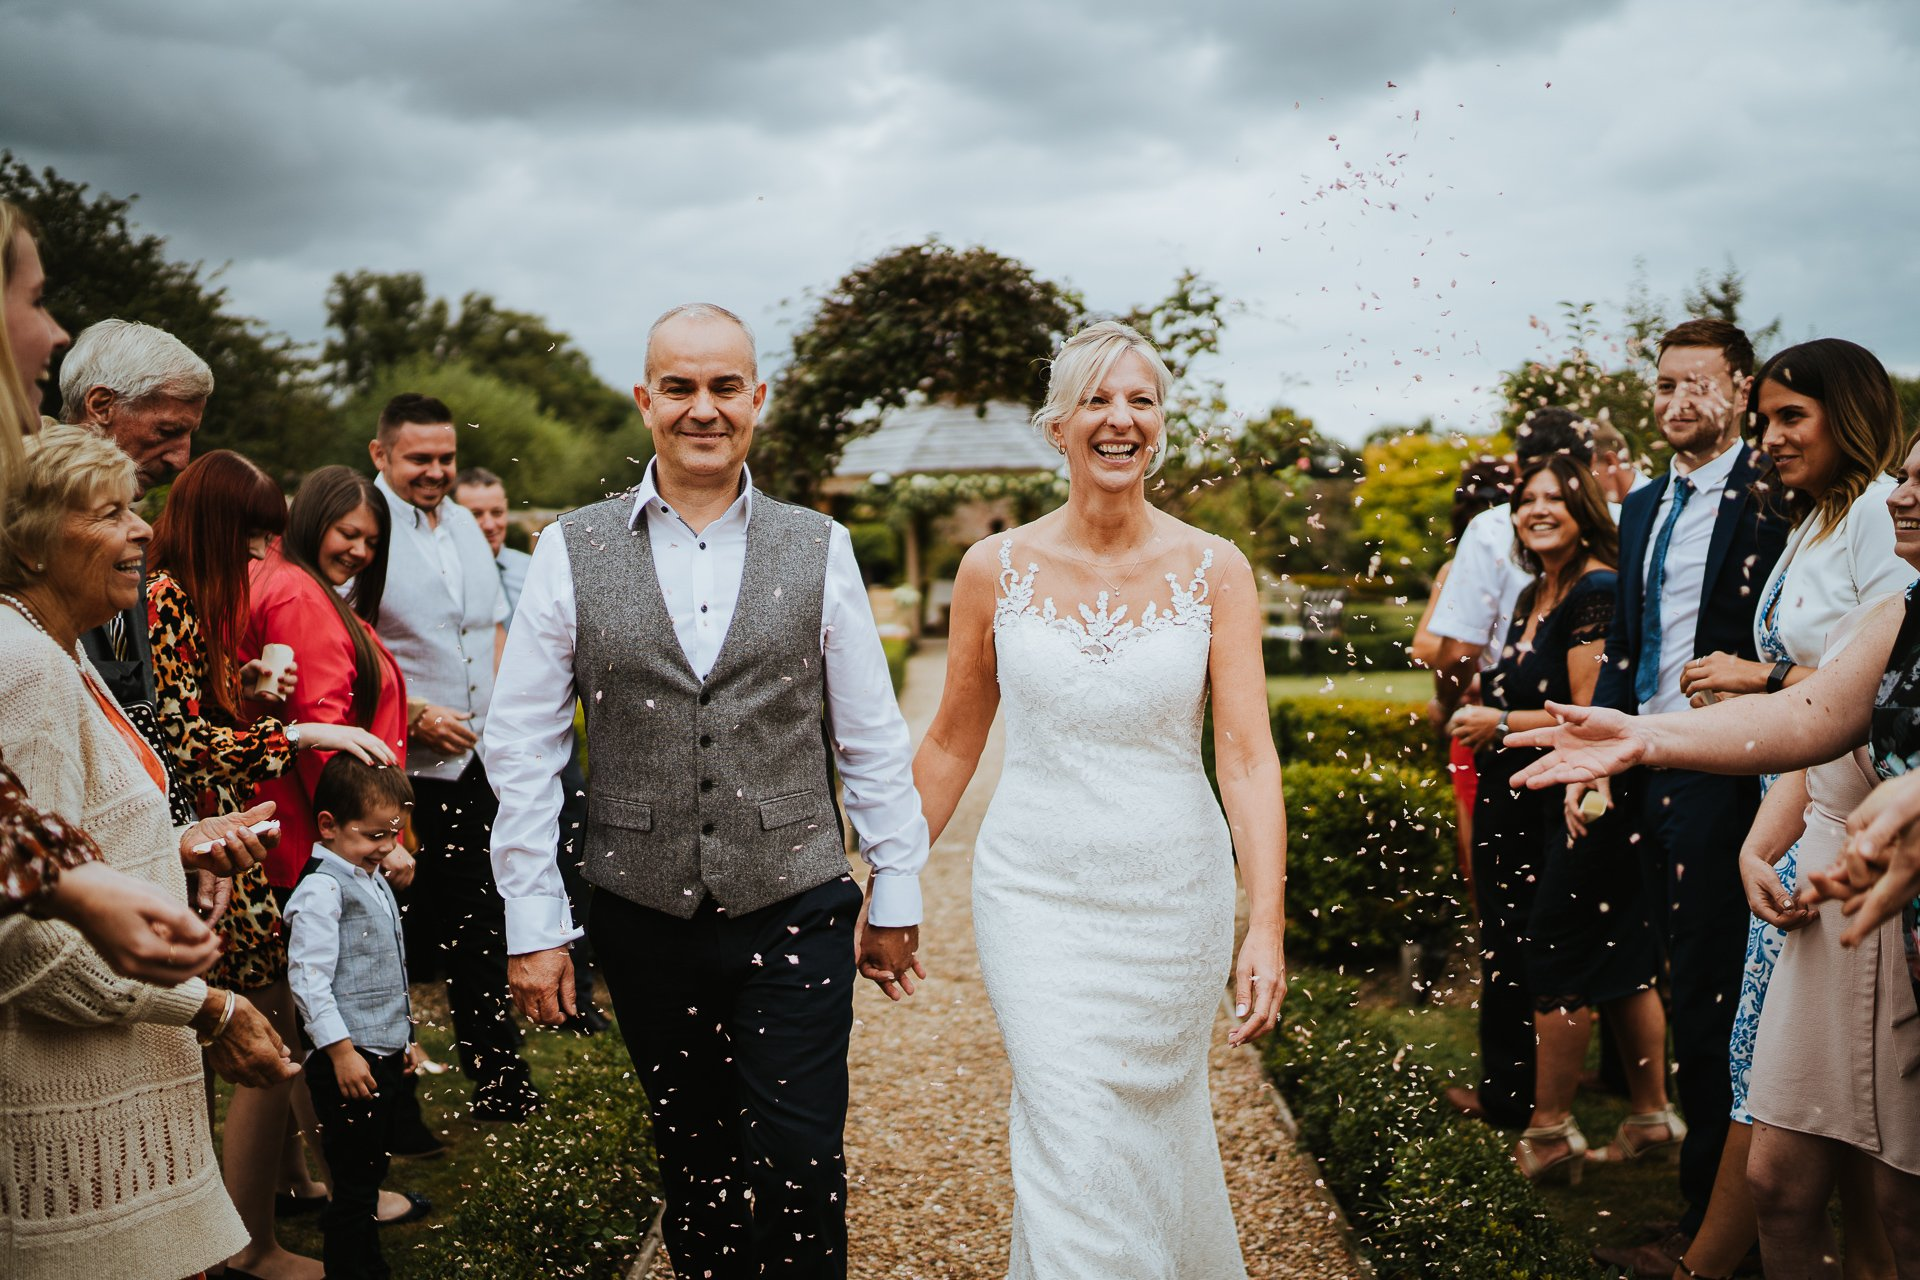 Bride and Groom showered with confetti at The Secret Garden